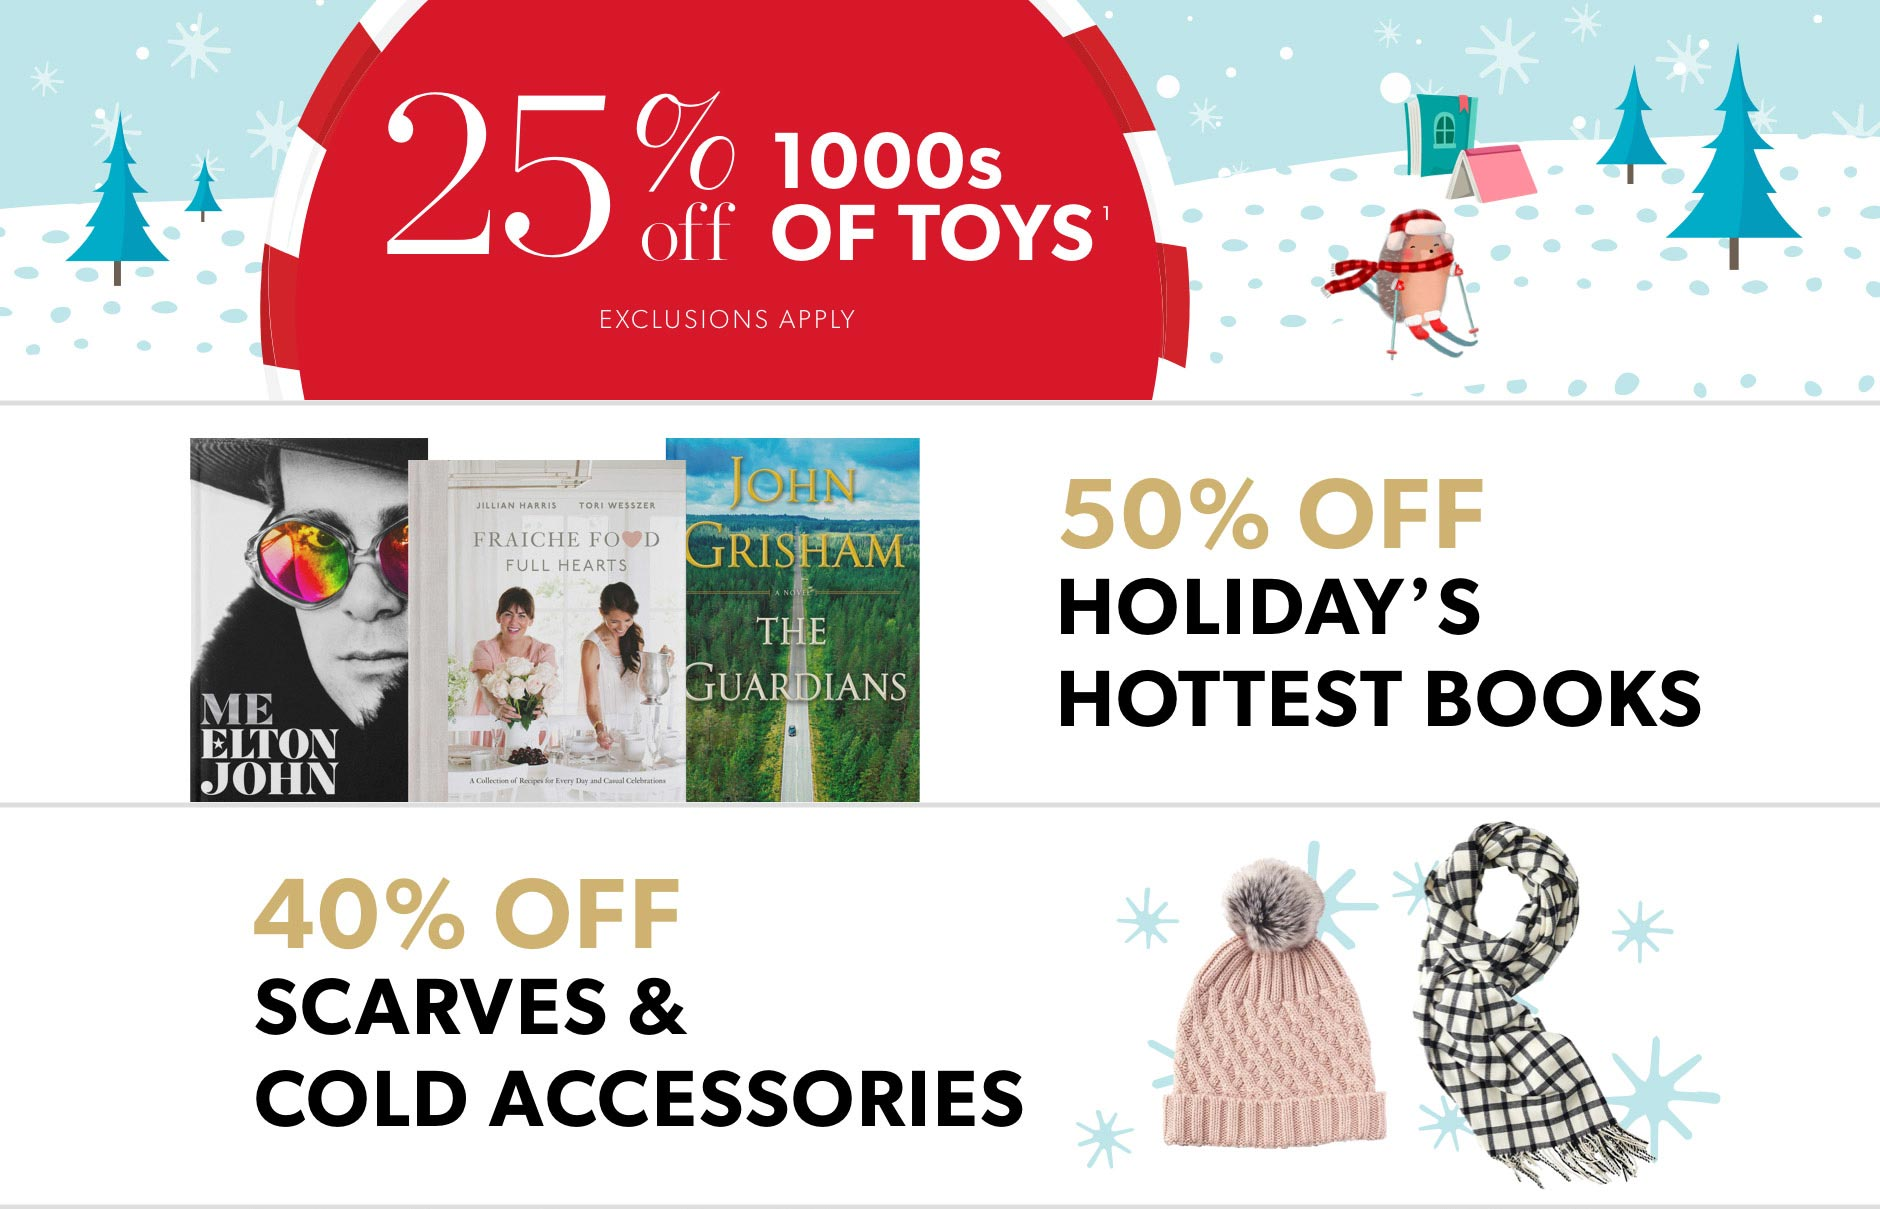 Black Friday In-Store Only: 25% off 1000s of toys (exclusions apply), 50% off holiday's hottest books, & 40% off scarves and cold accessories